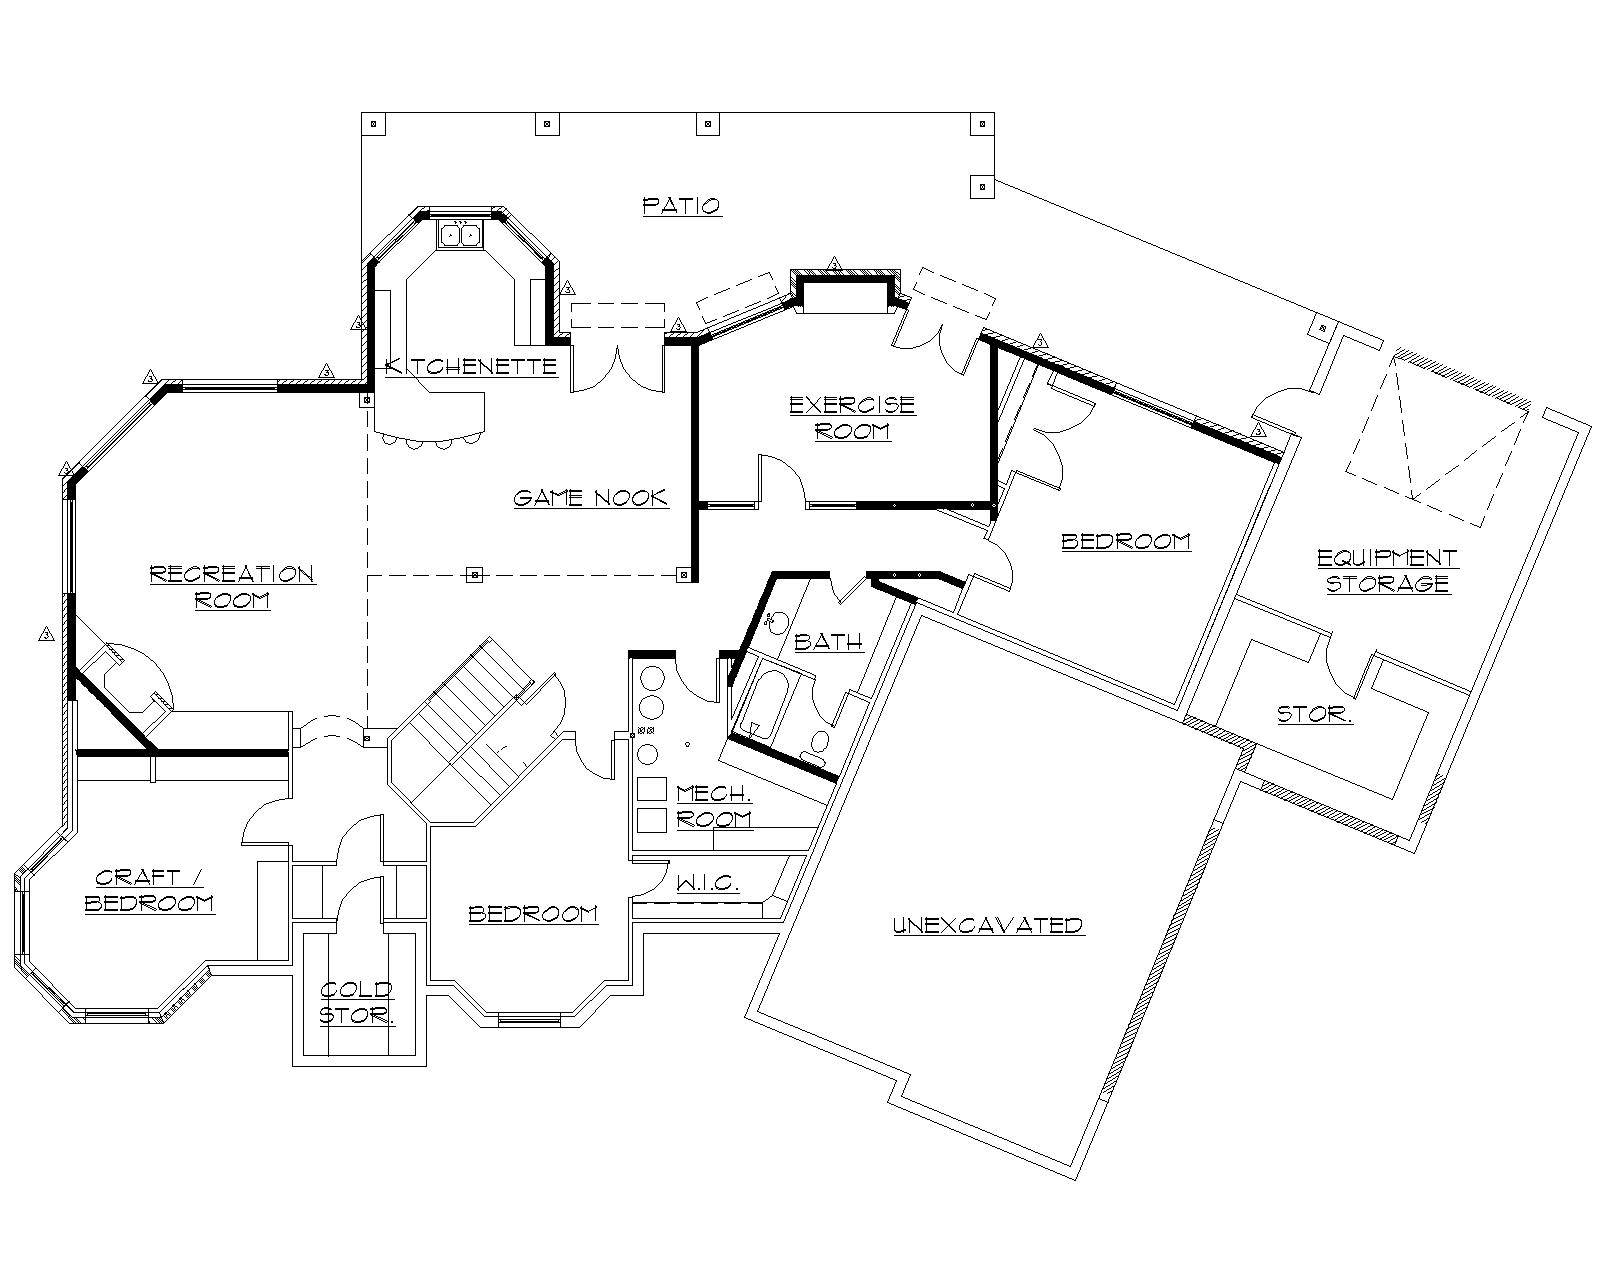 135-1216: Floor Plan Basement